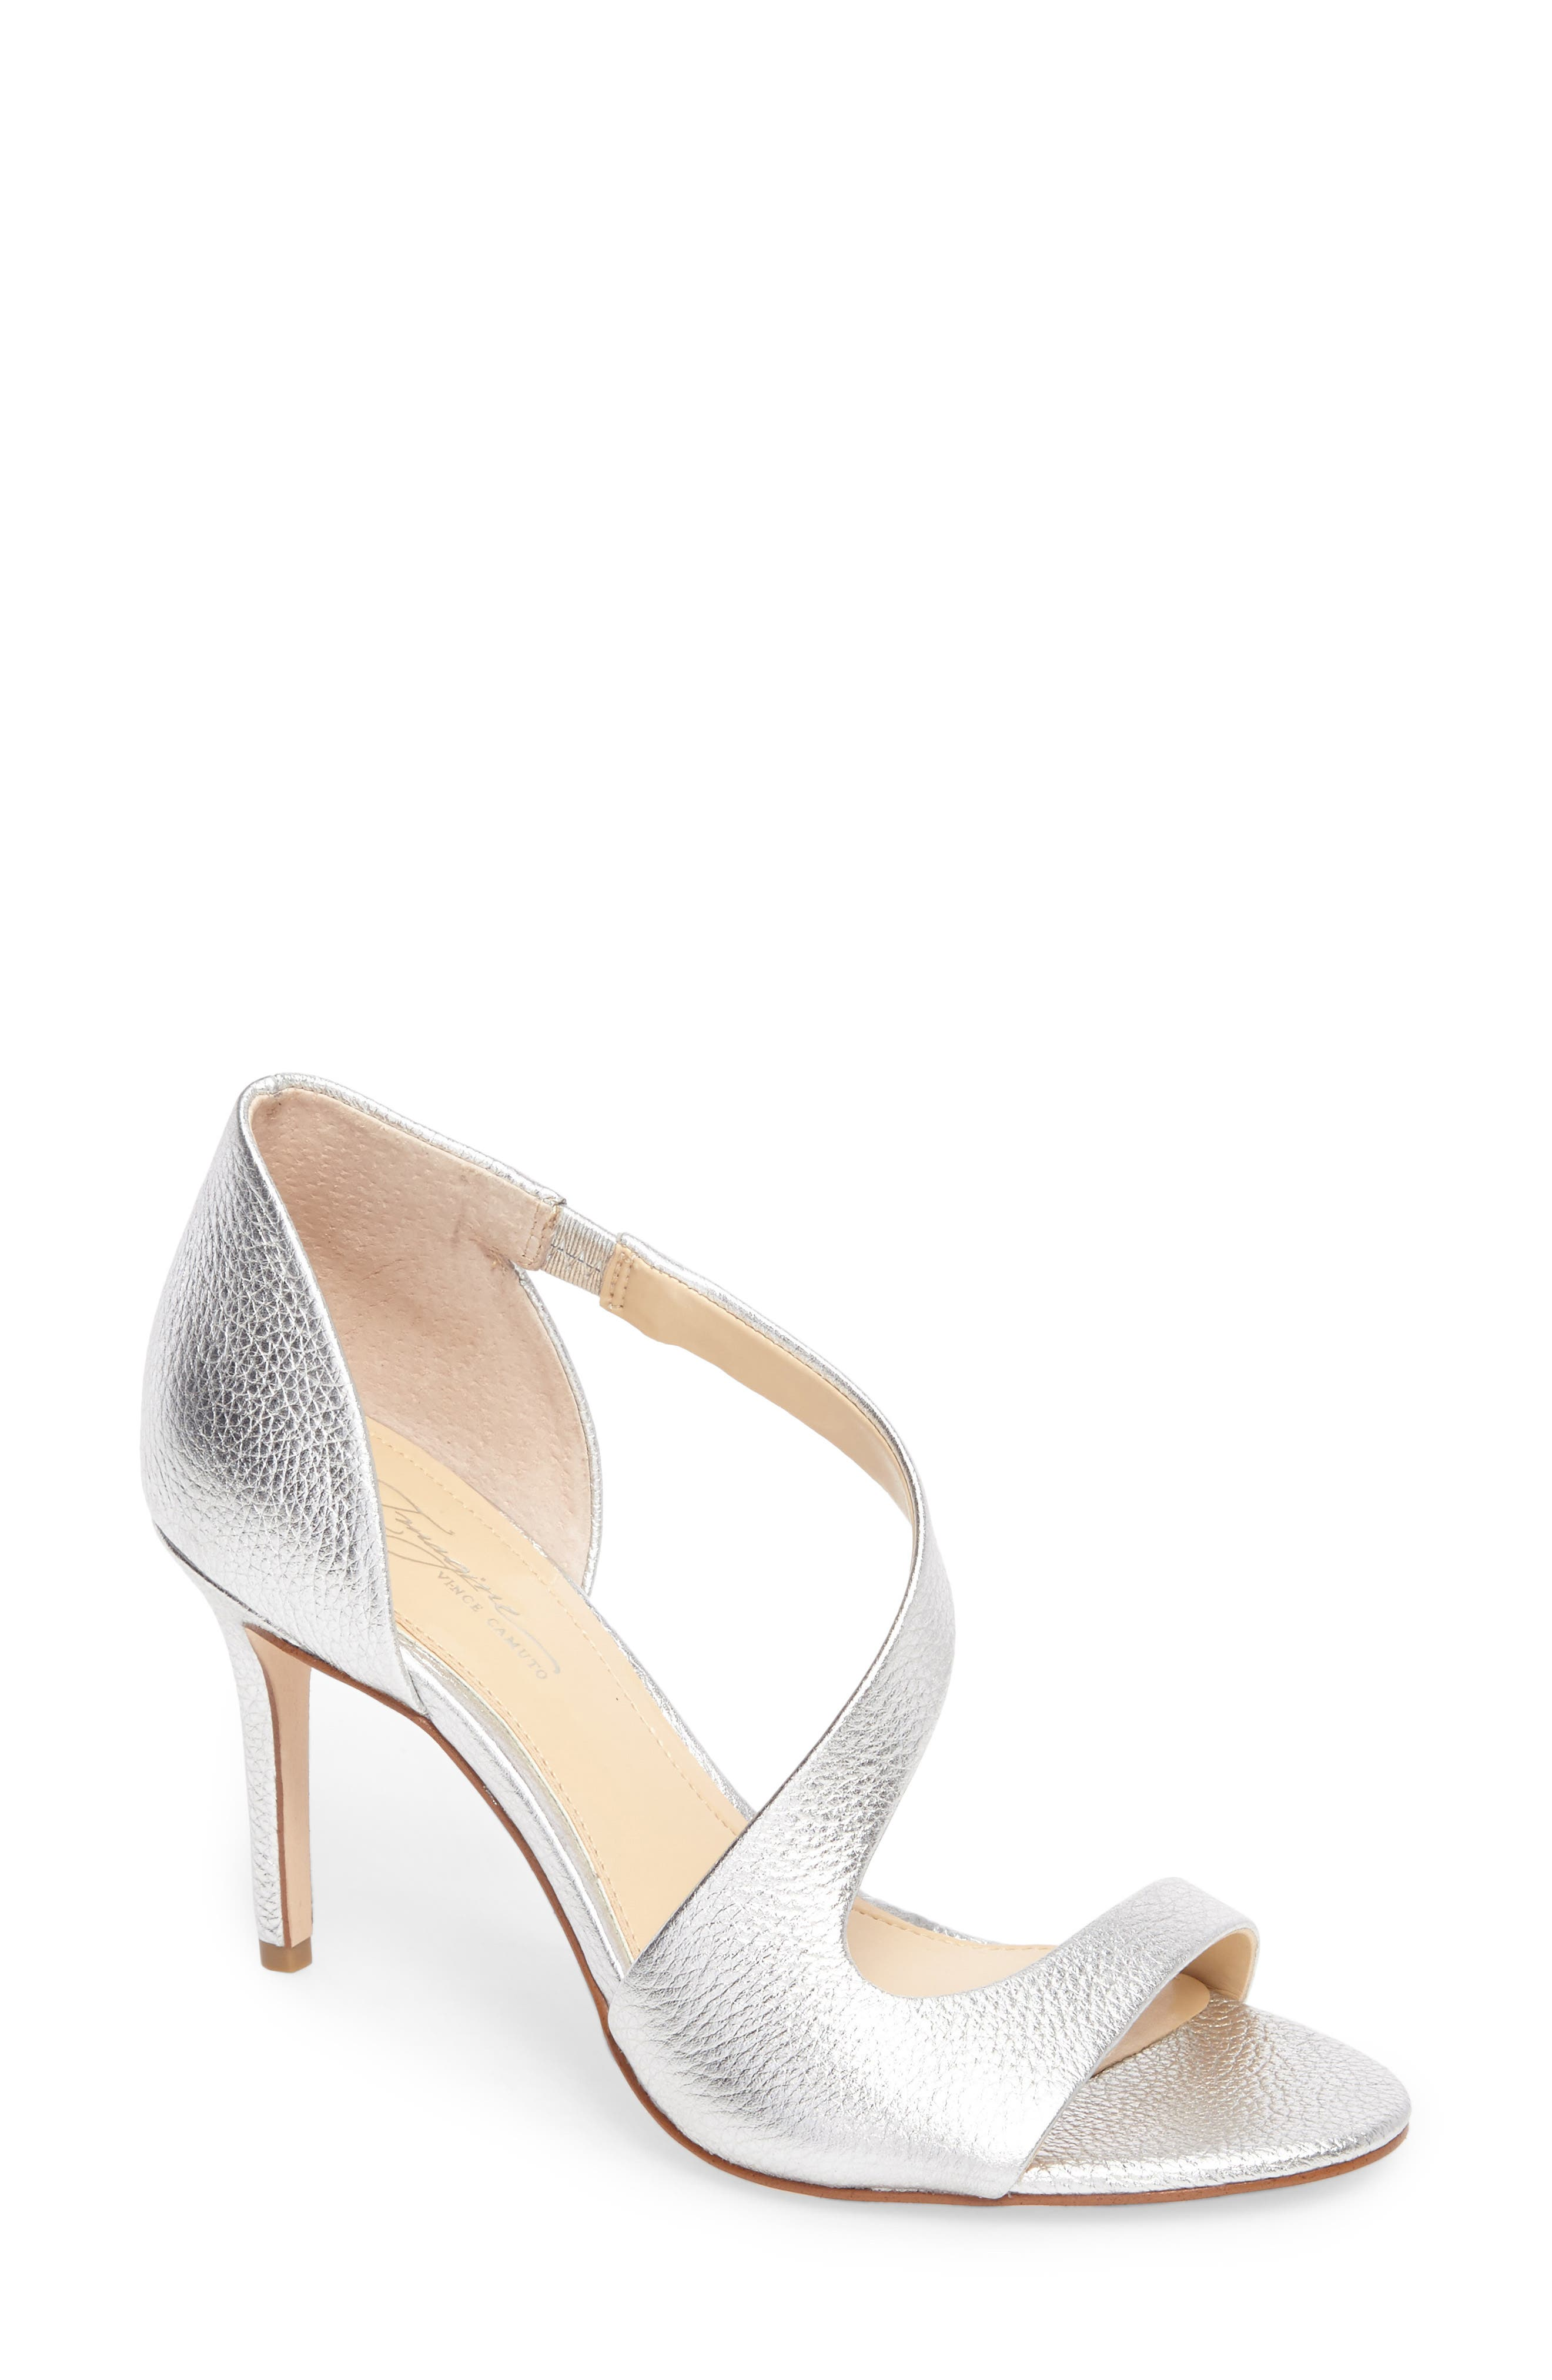 Alternate Image 1 Selected - Imagine Vince Camuto Purch Sandal (Women)